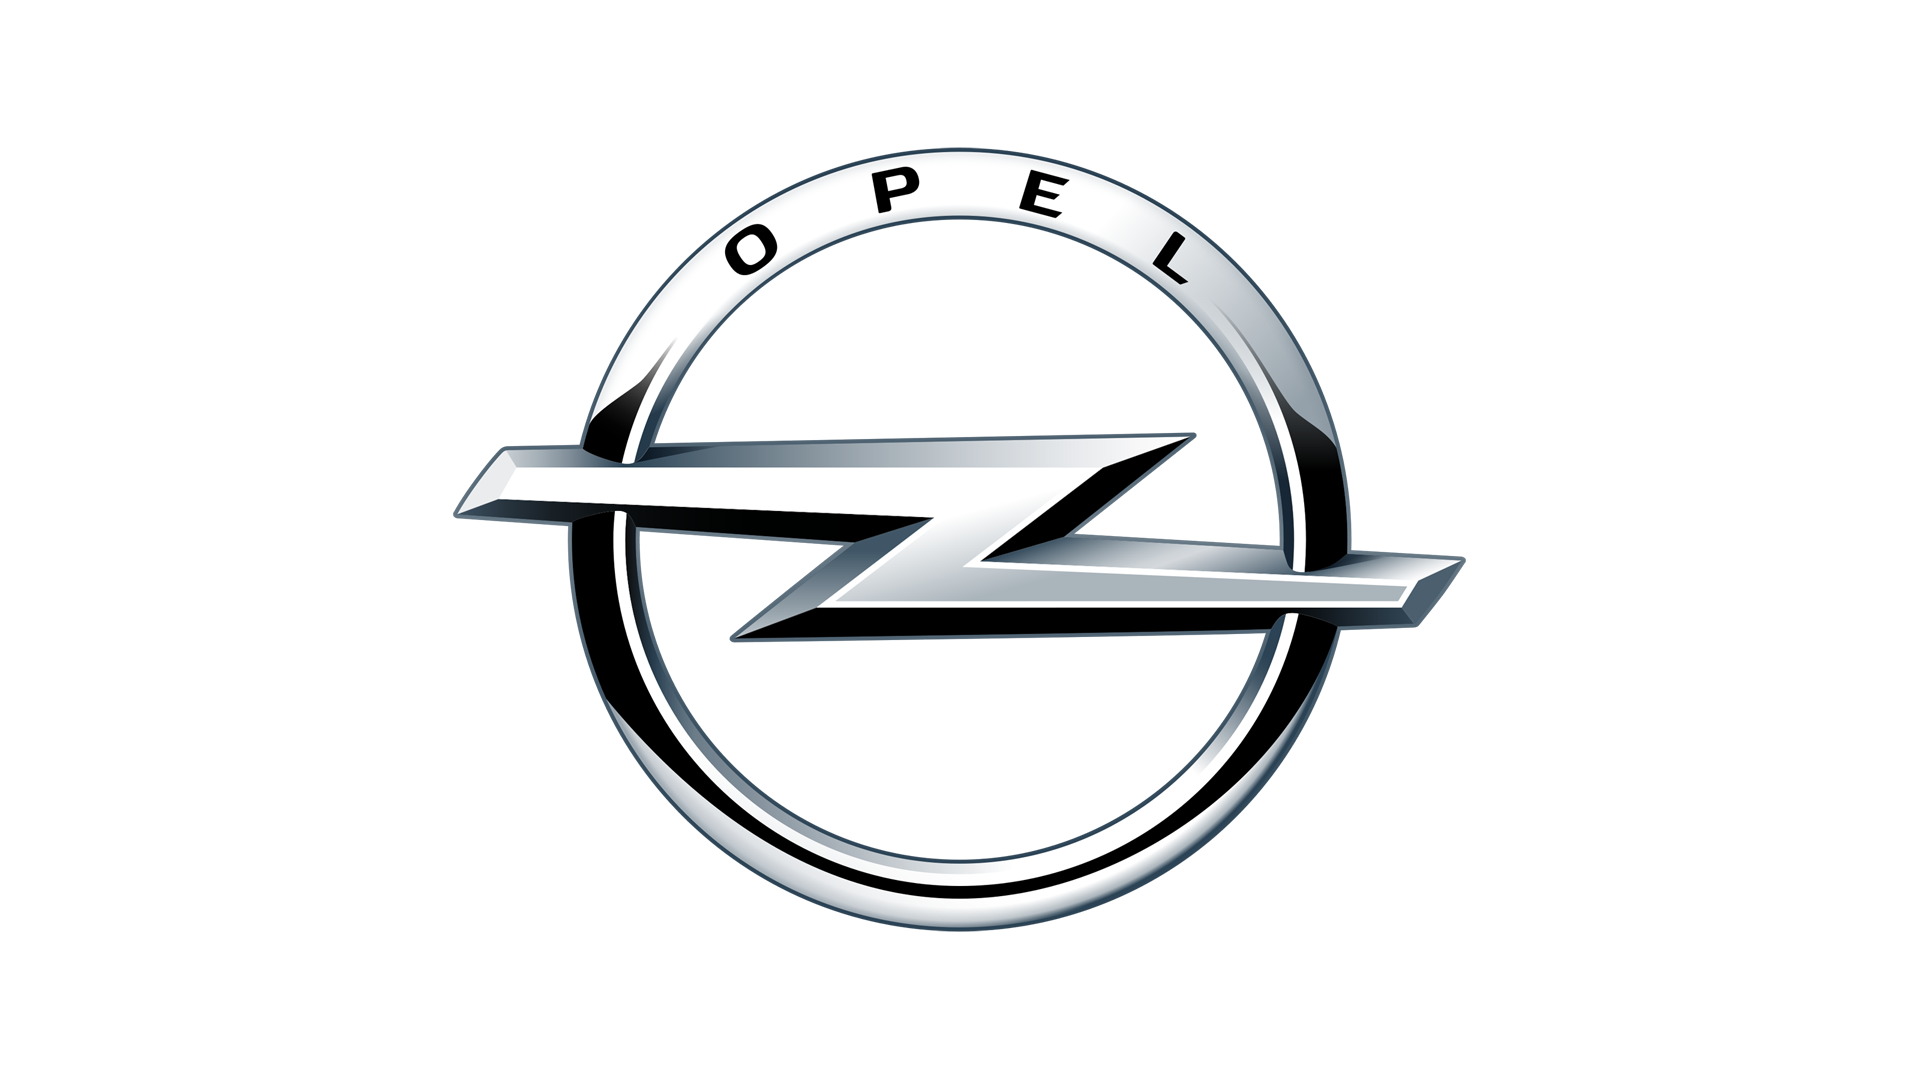 1920x1080 HD png - Opel HD PNG